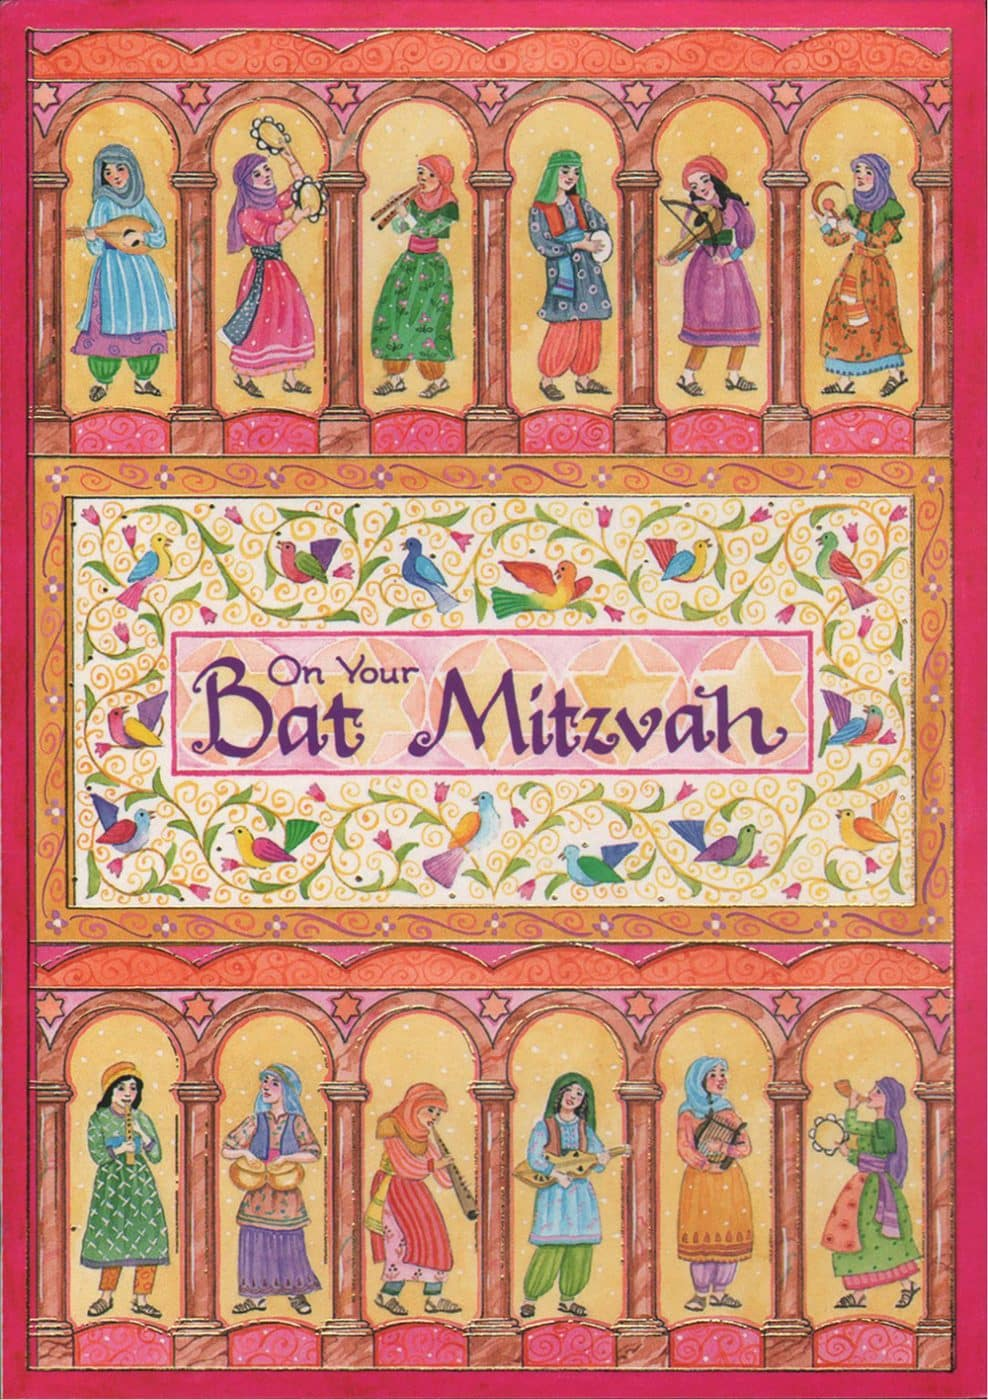 Bat Mitzvah Caspi Cards Amp Art